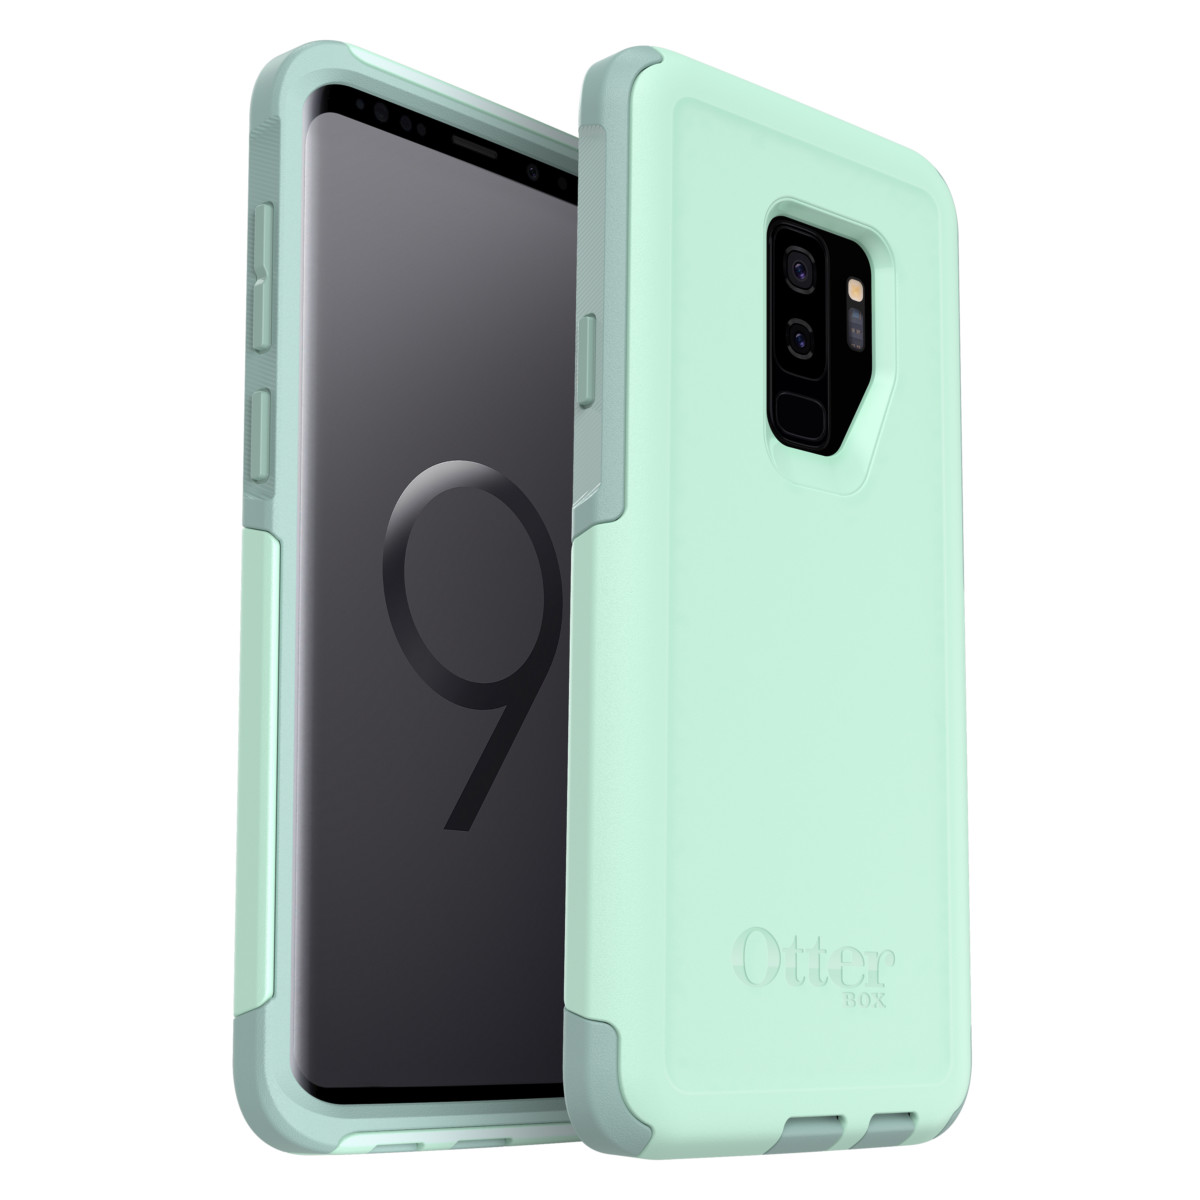 online store 96815 2aa12 These Otterbox casings will protect your new Galaxy S9 and S9+ from ...